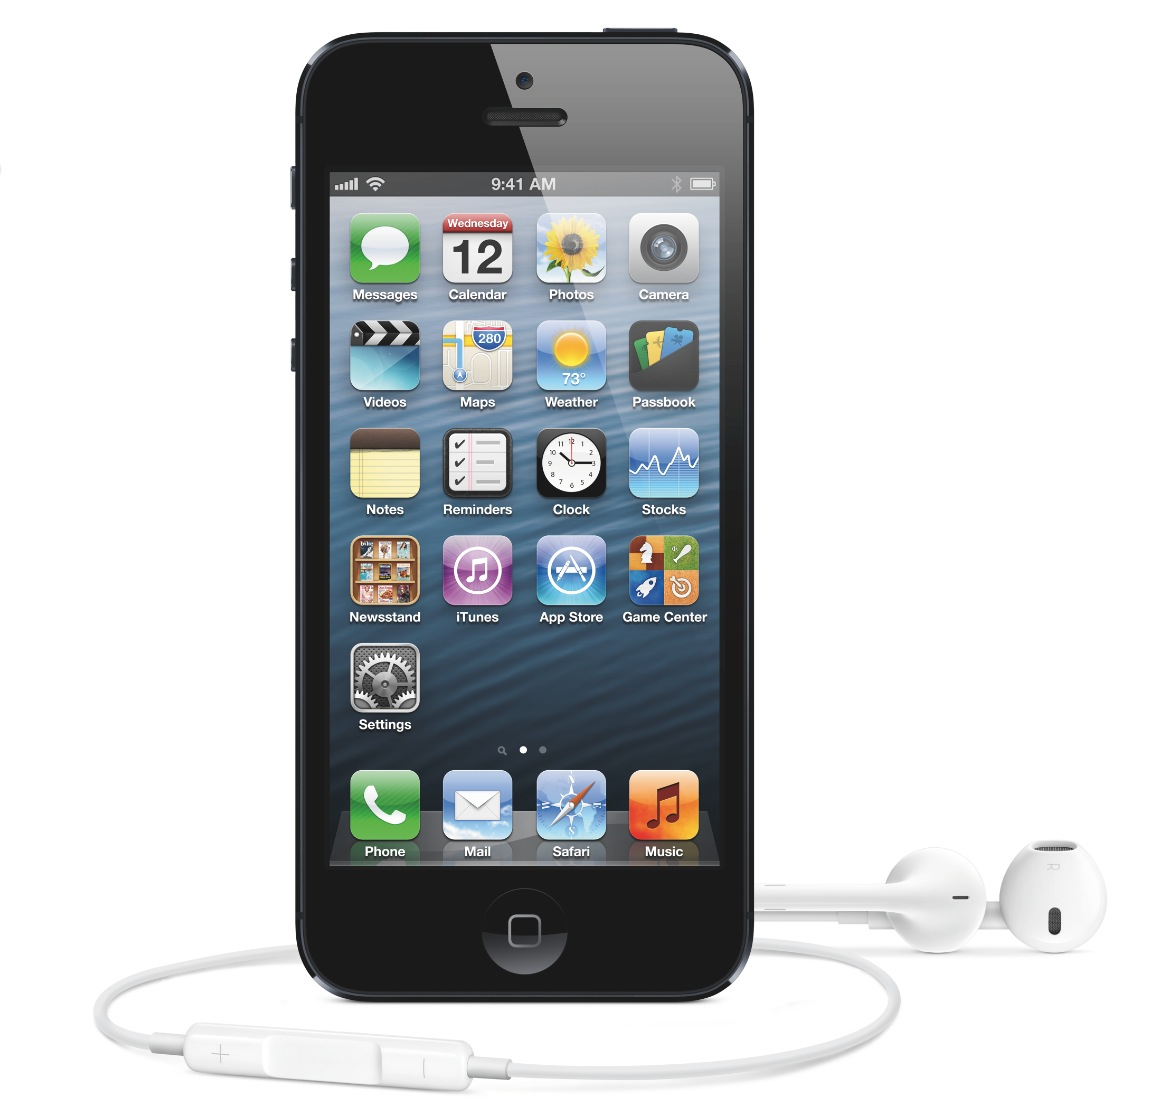 When is iPhone 5s coming out? Let the Speculation Begin!